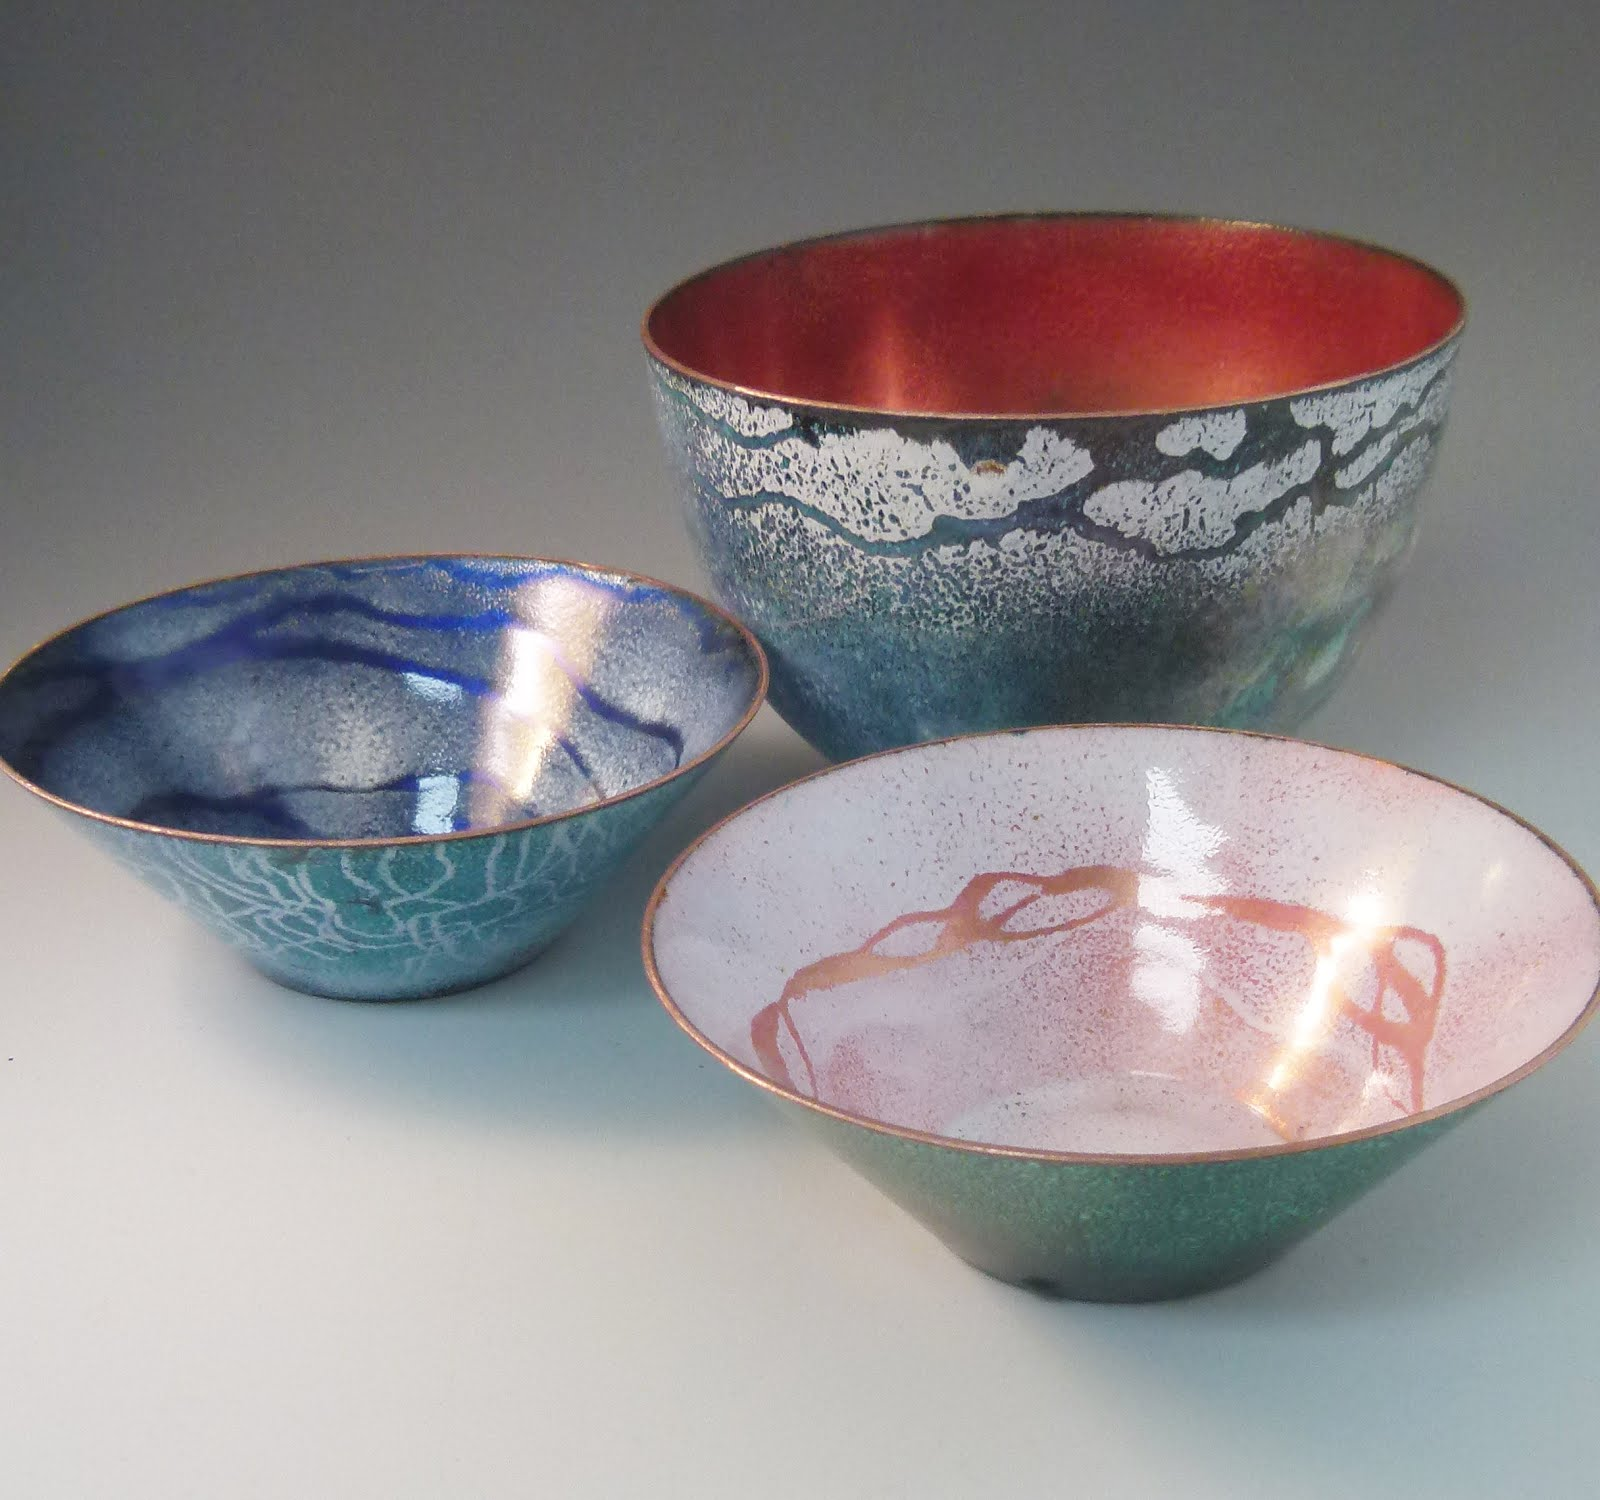 Enamel on copper bowls